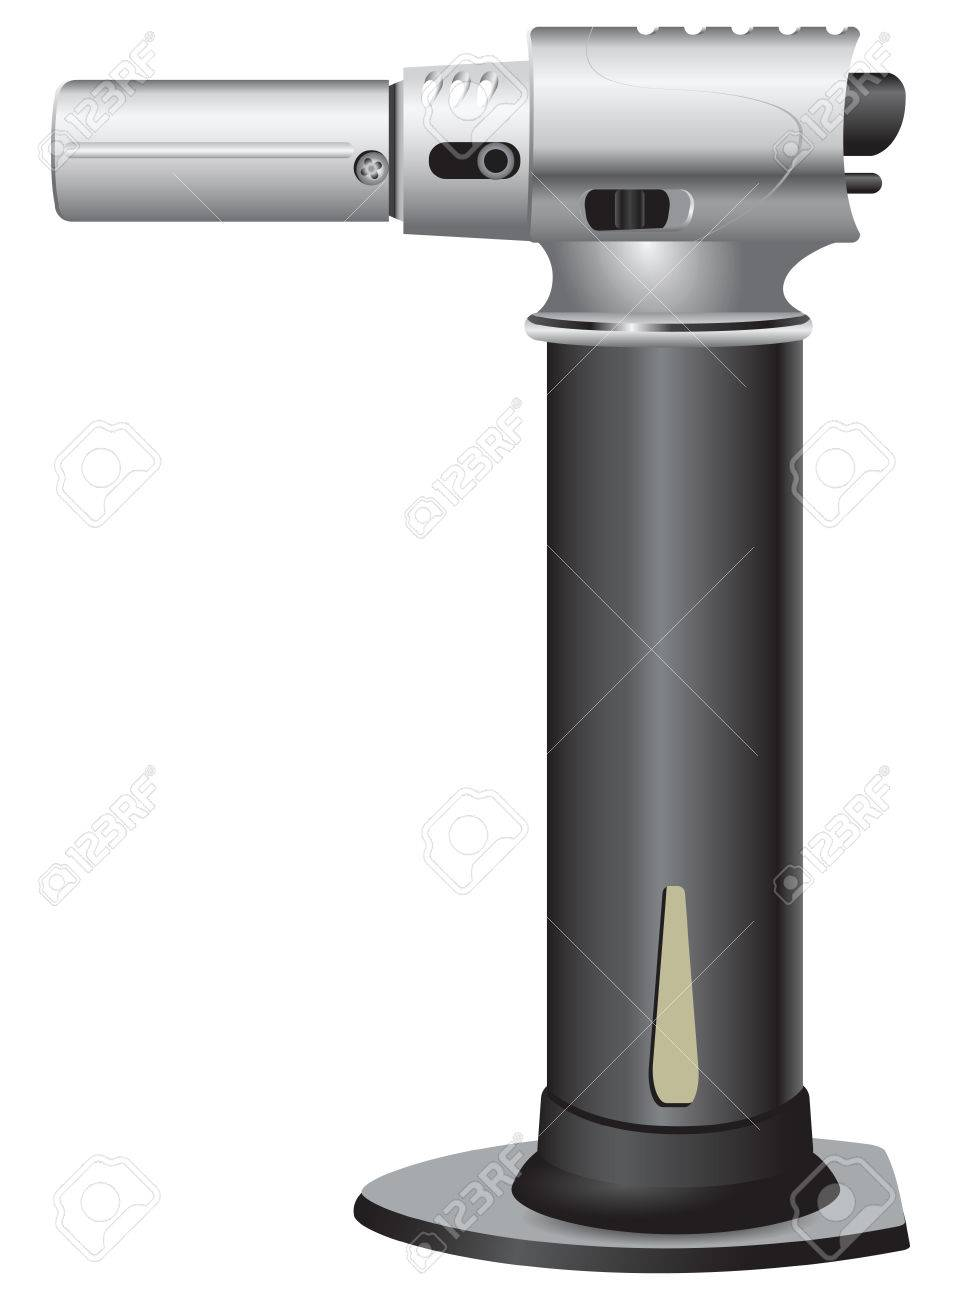 Culinary butane lighter. Vector illustration without trace. Stock Vector - 27907166